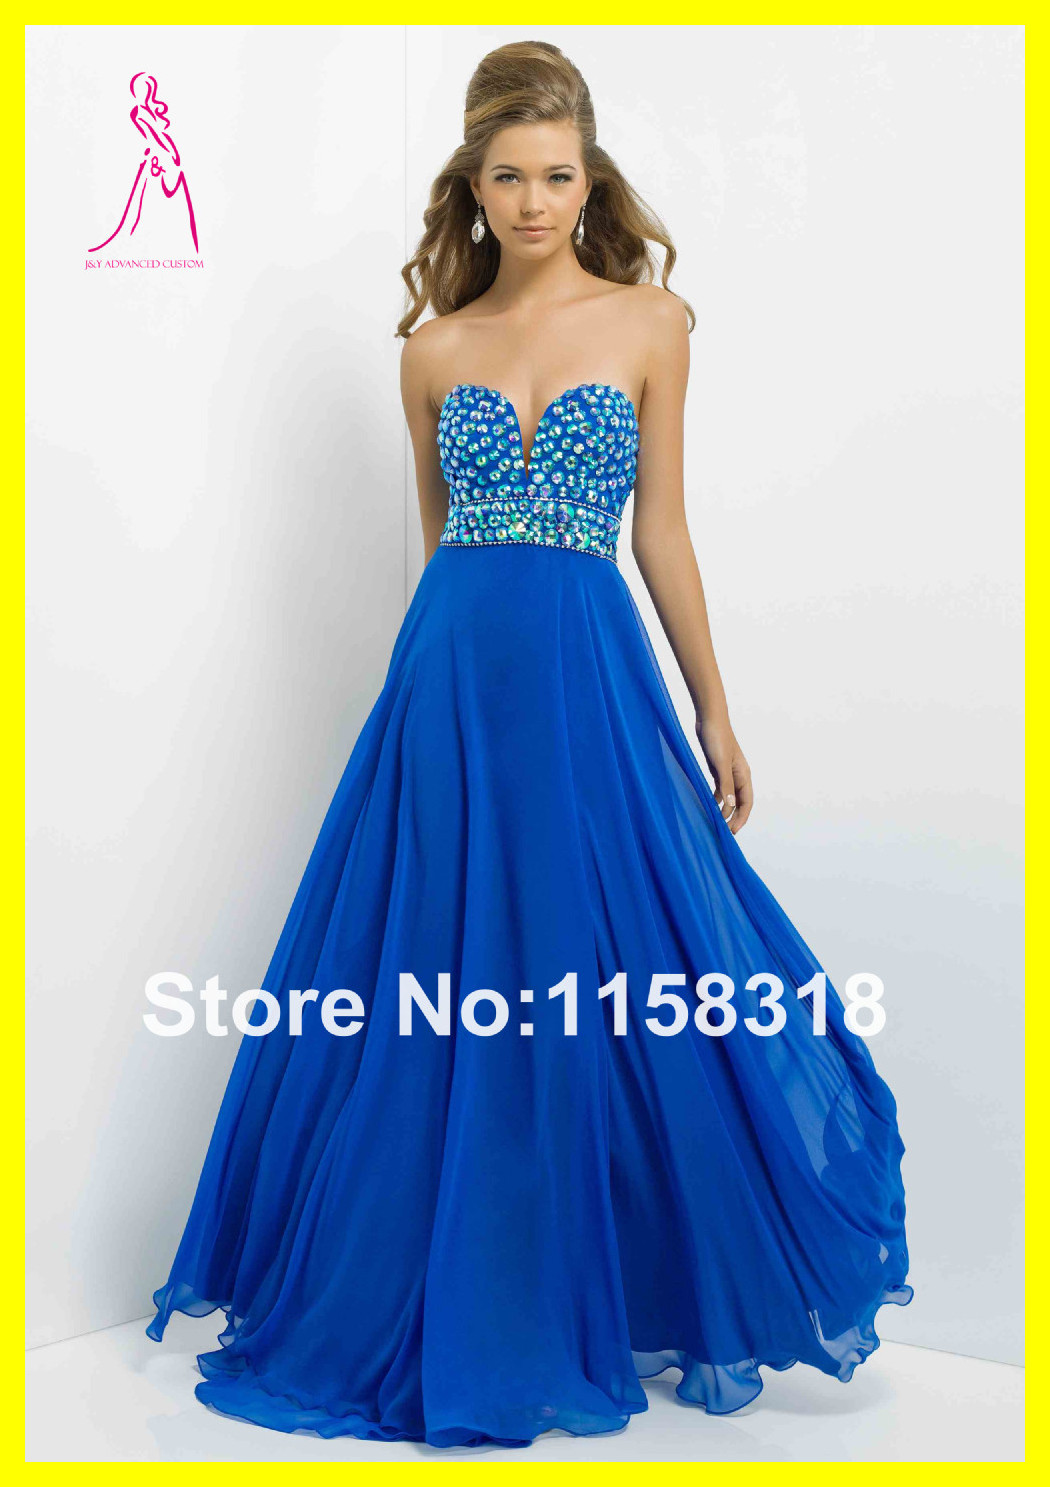 Collection Where To Shop For A Prom Dress Pictures - Reikian